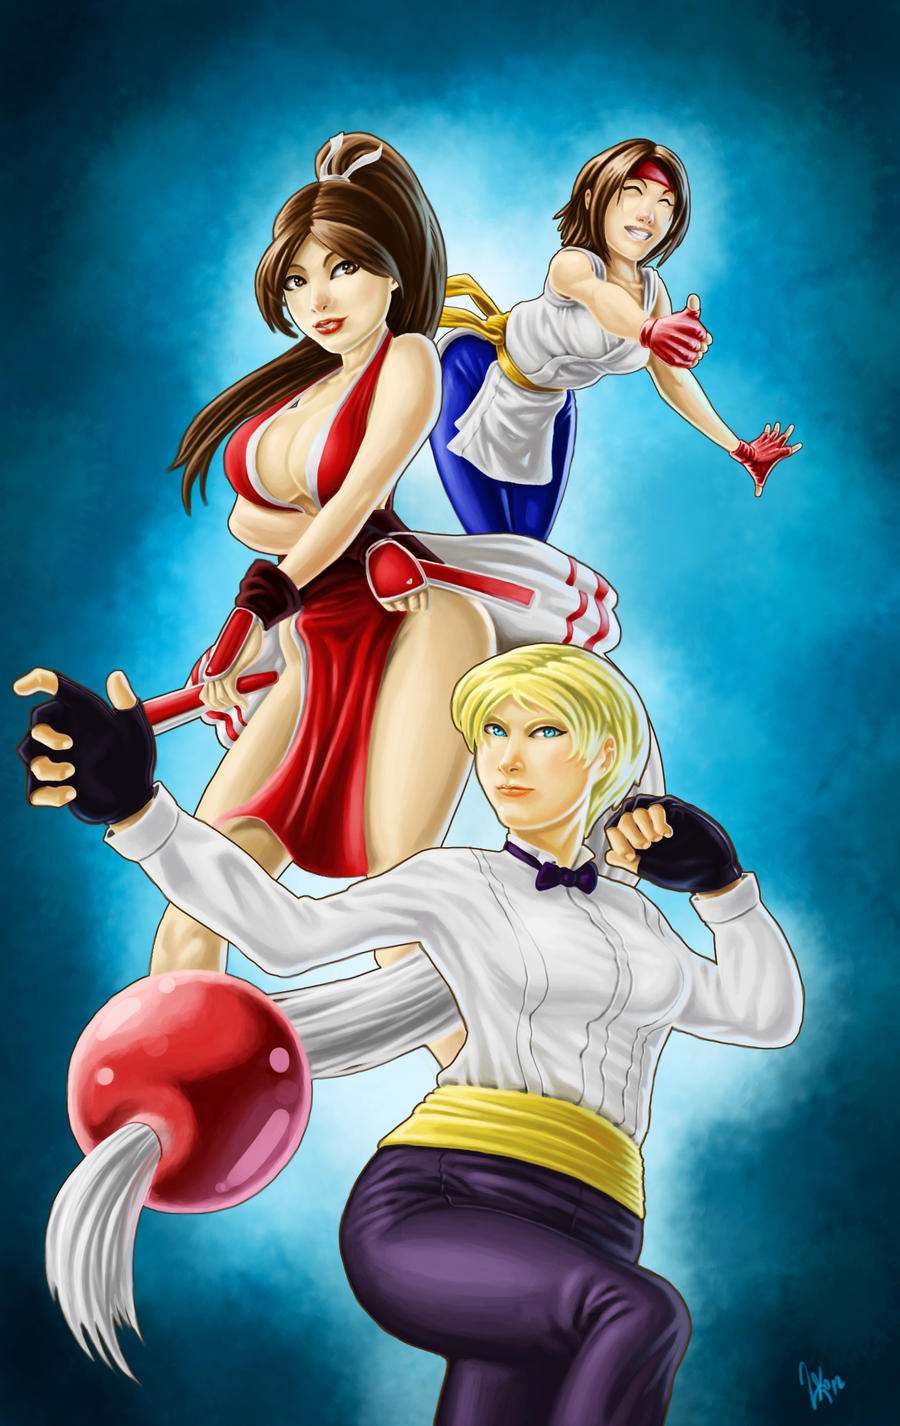 The King of Fighters fanart by NanadoRJ